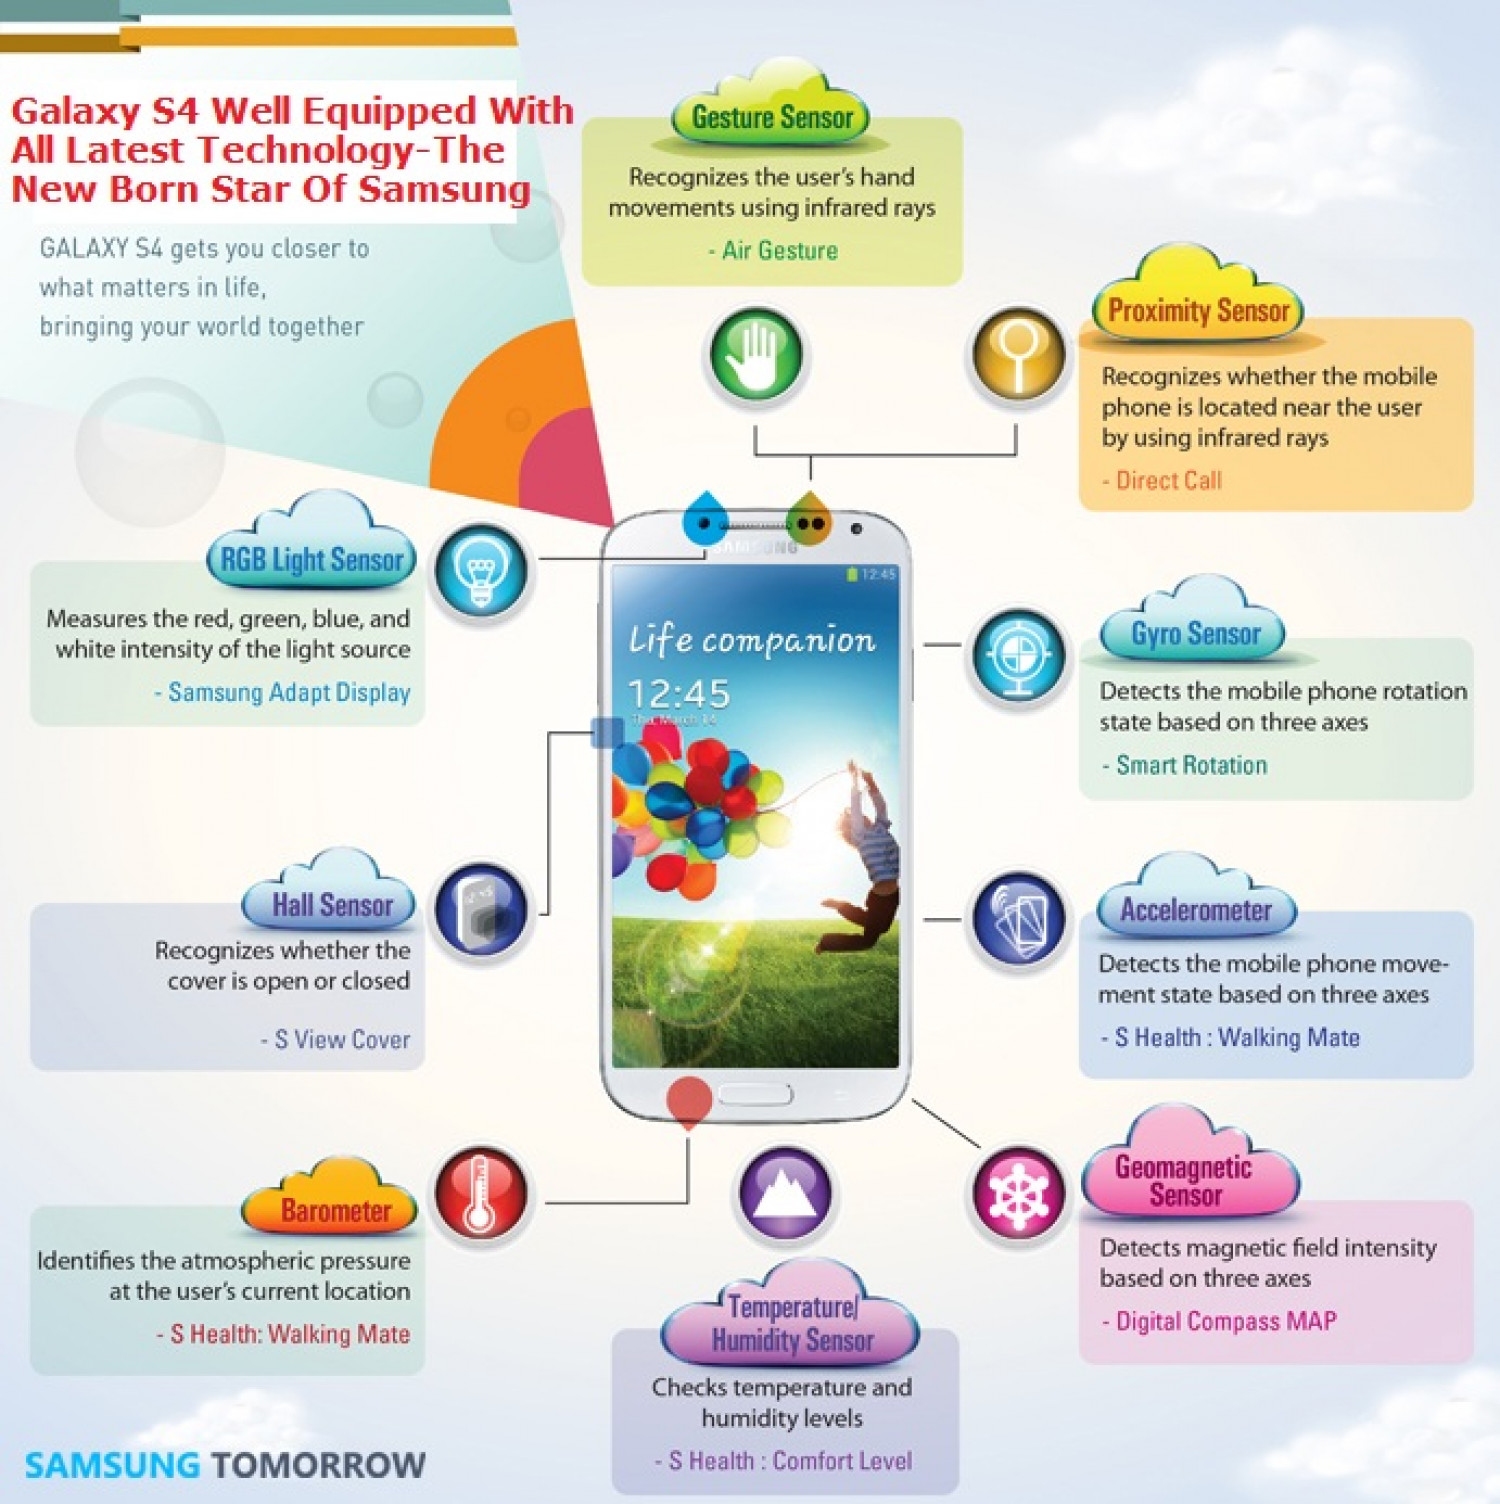 Galaxy S4 The New Born star Of Samsung Infographic